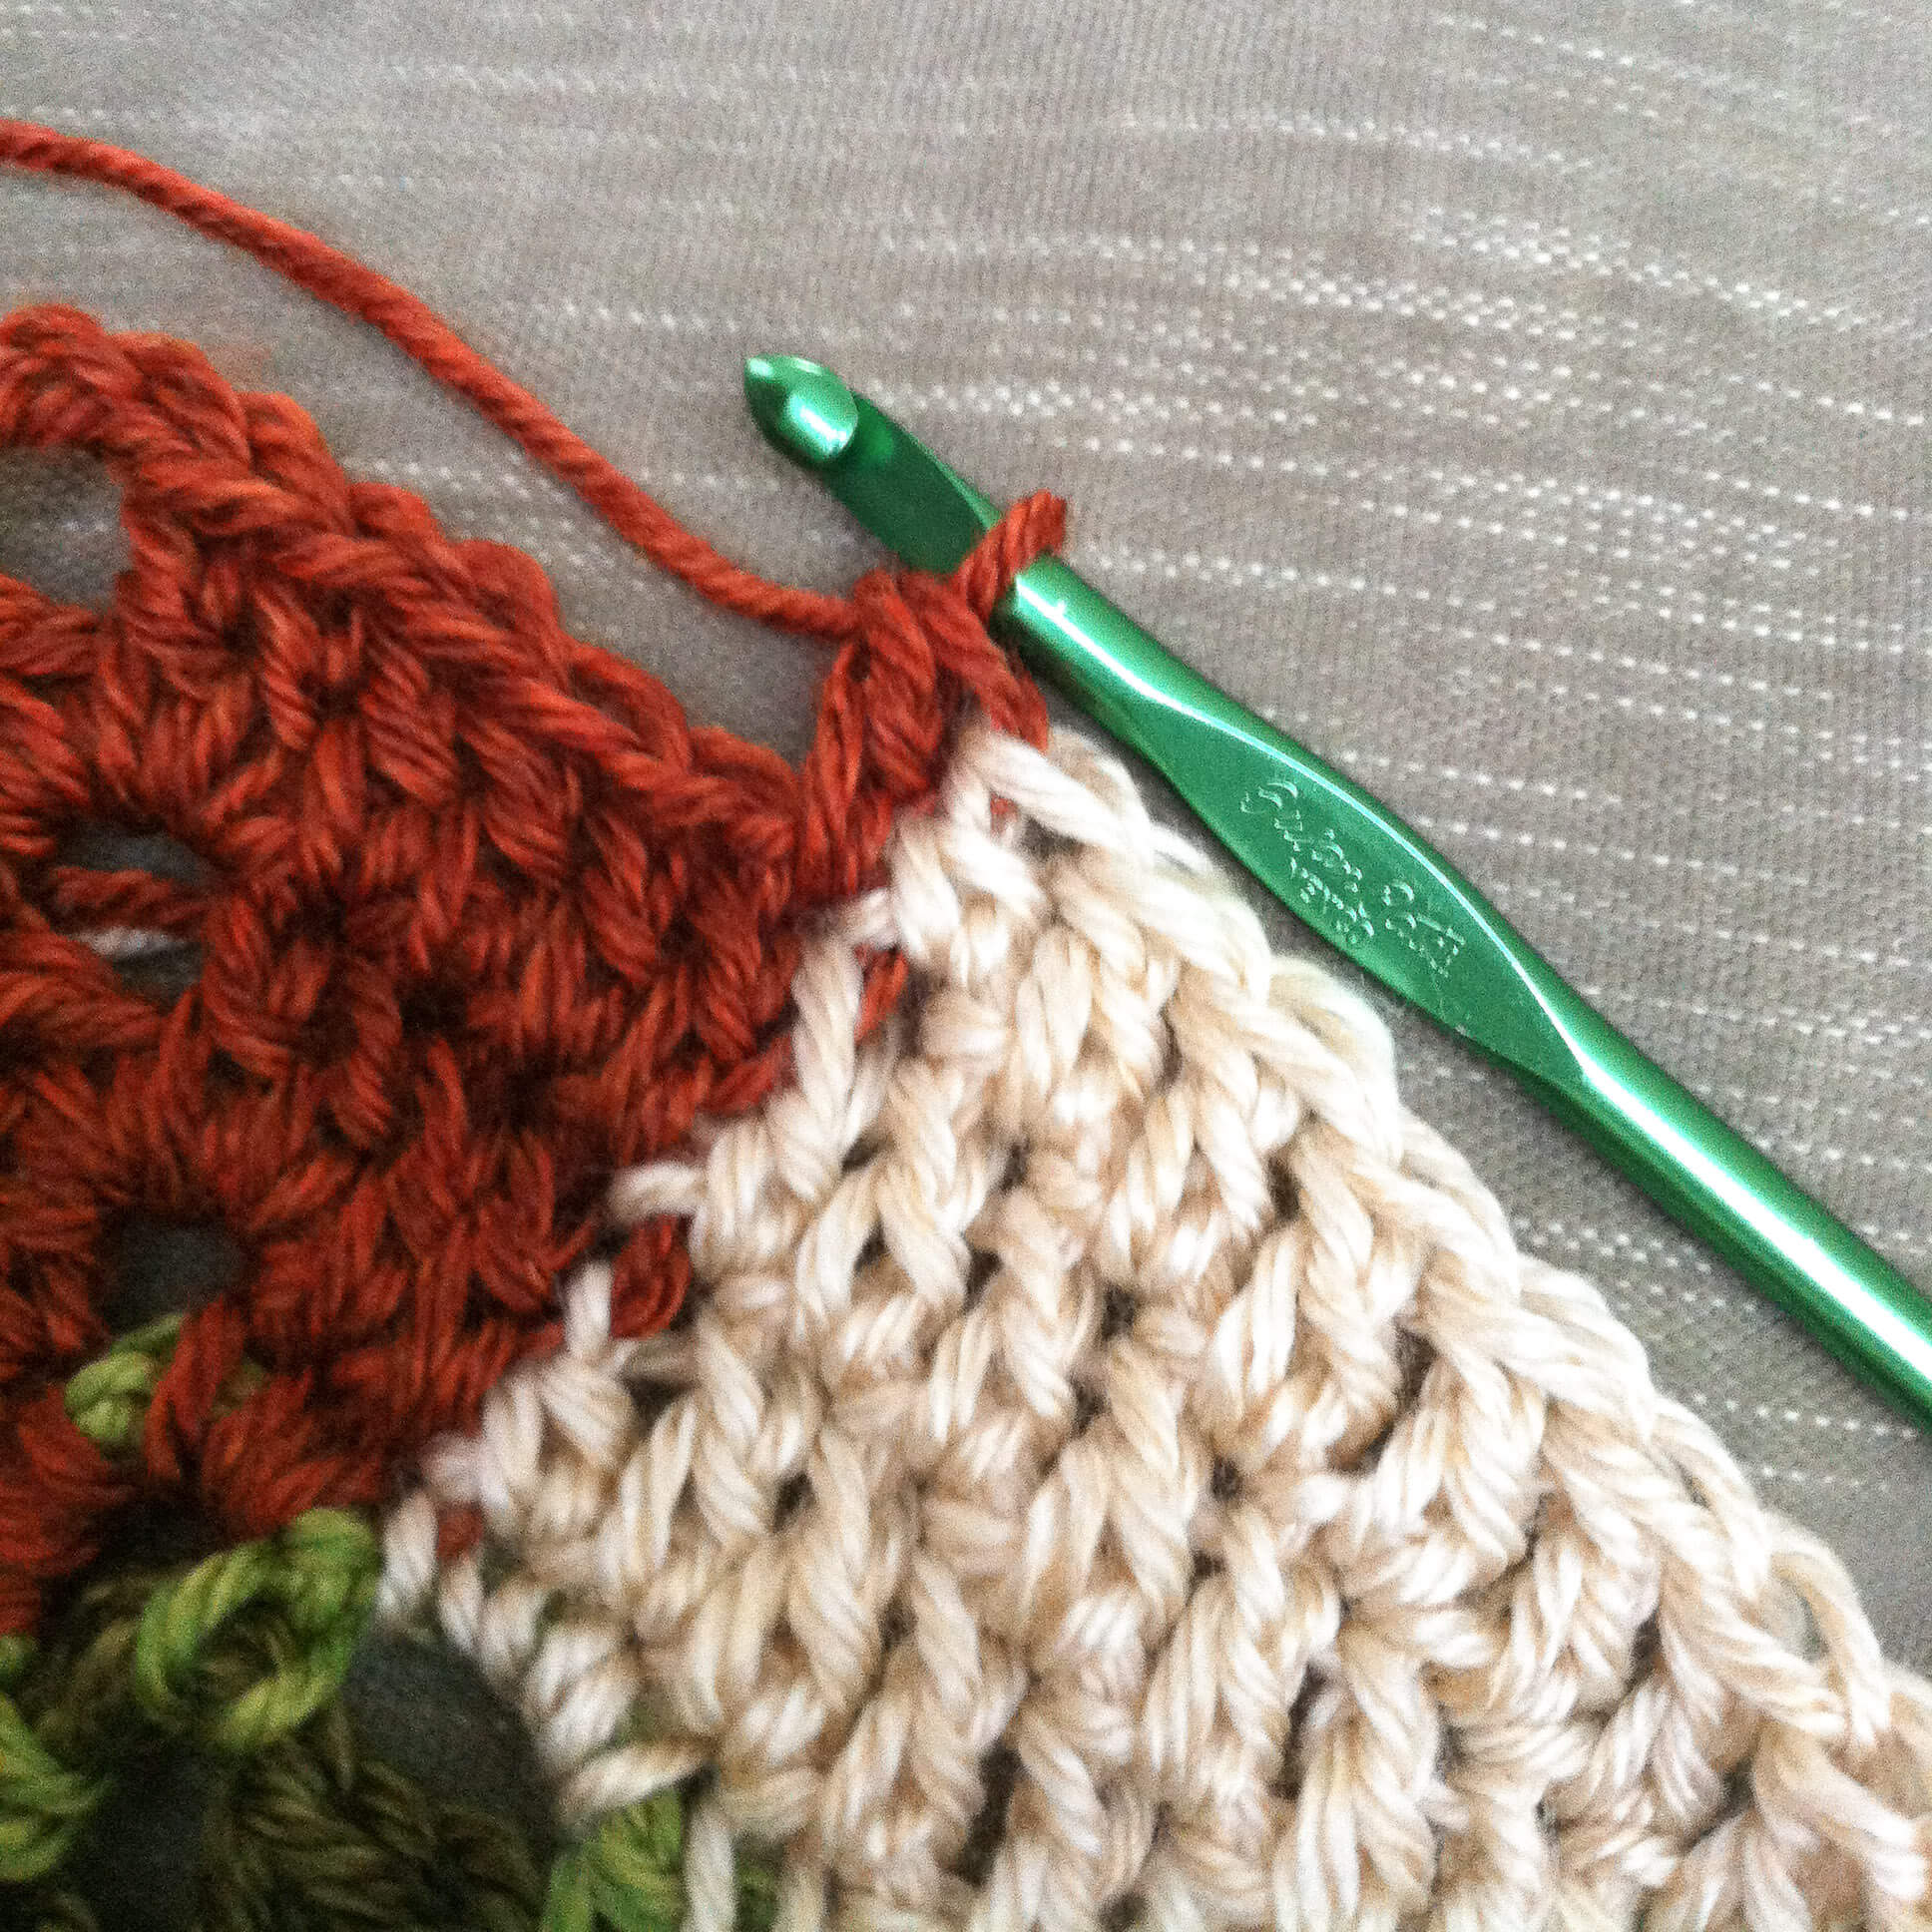 How to Seamlessly Change Colors in Crochet | www.petalstopicots.com